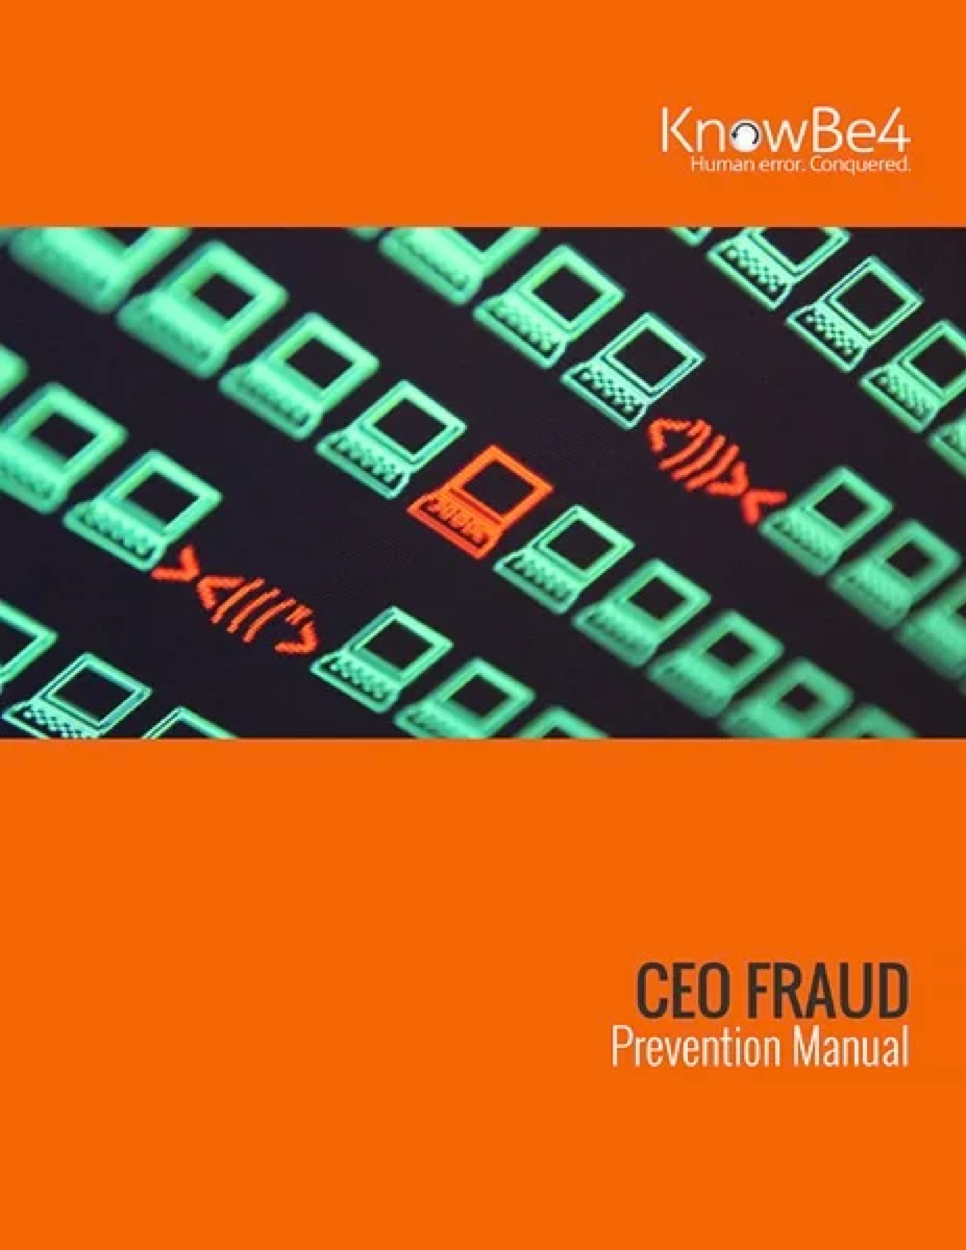 CEO Fraud Prevention Manual